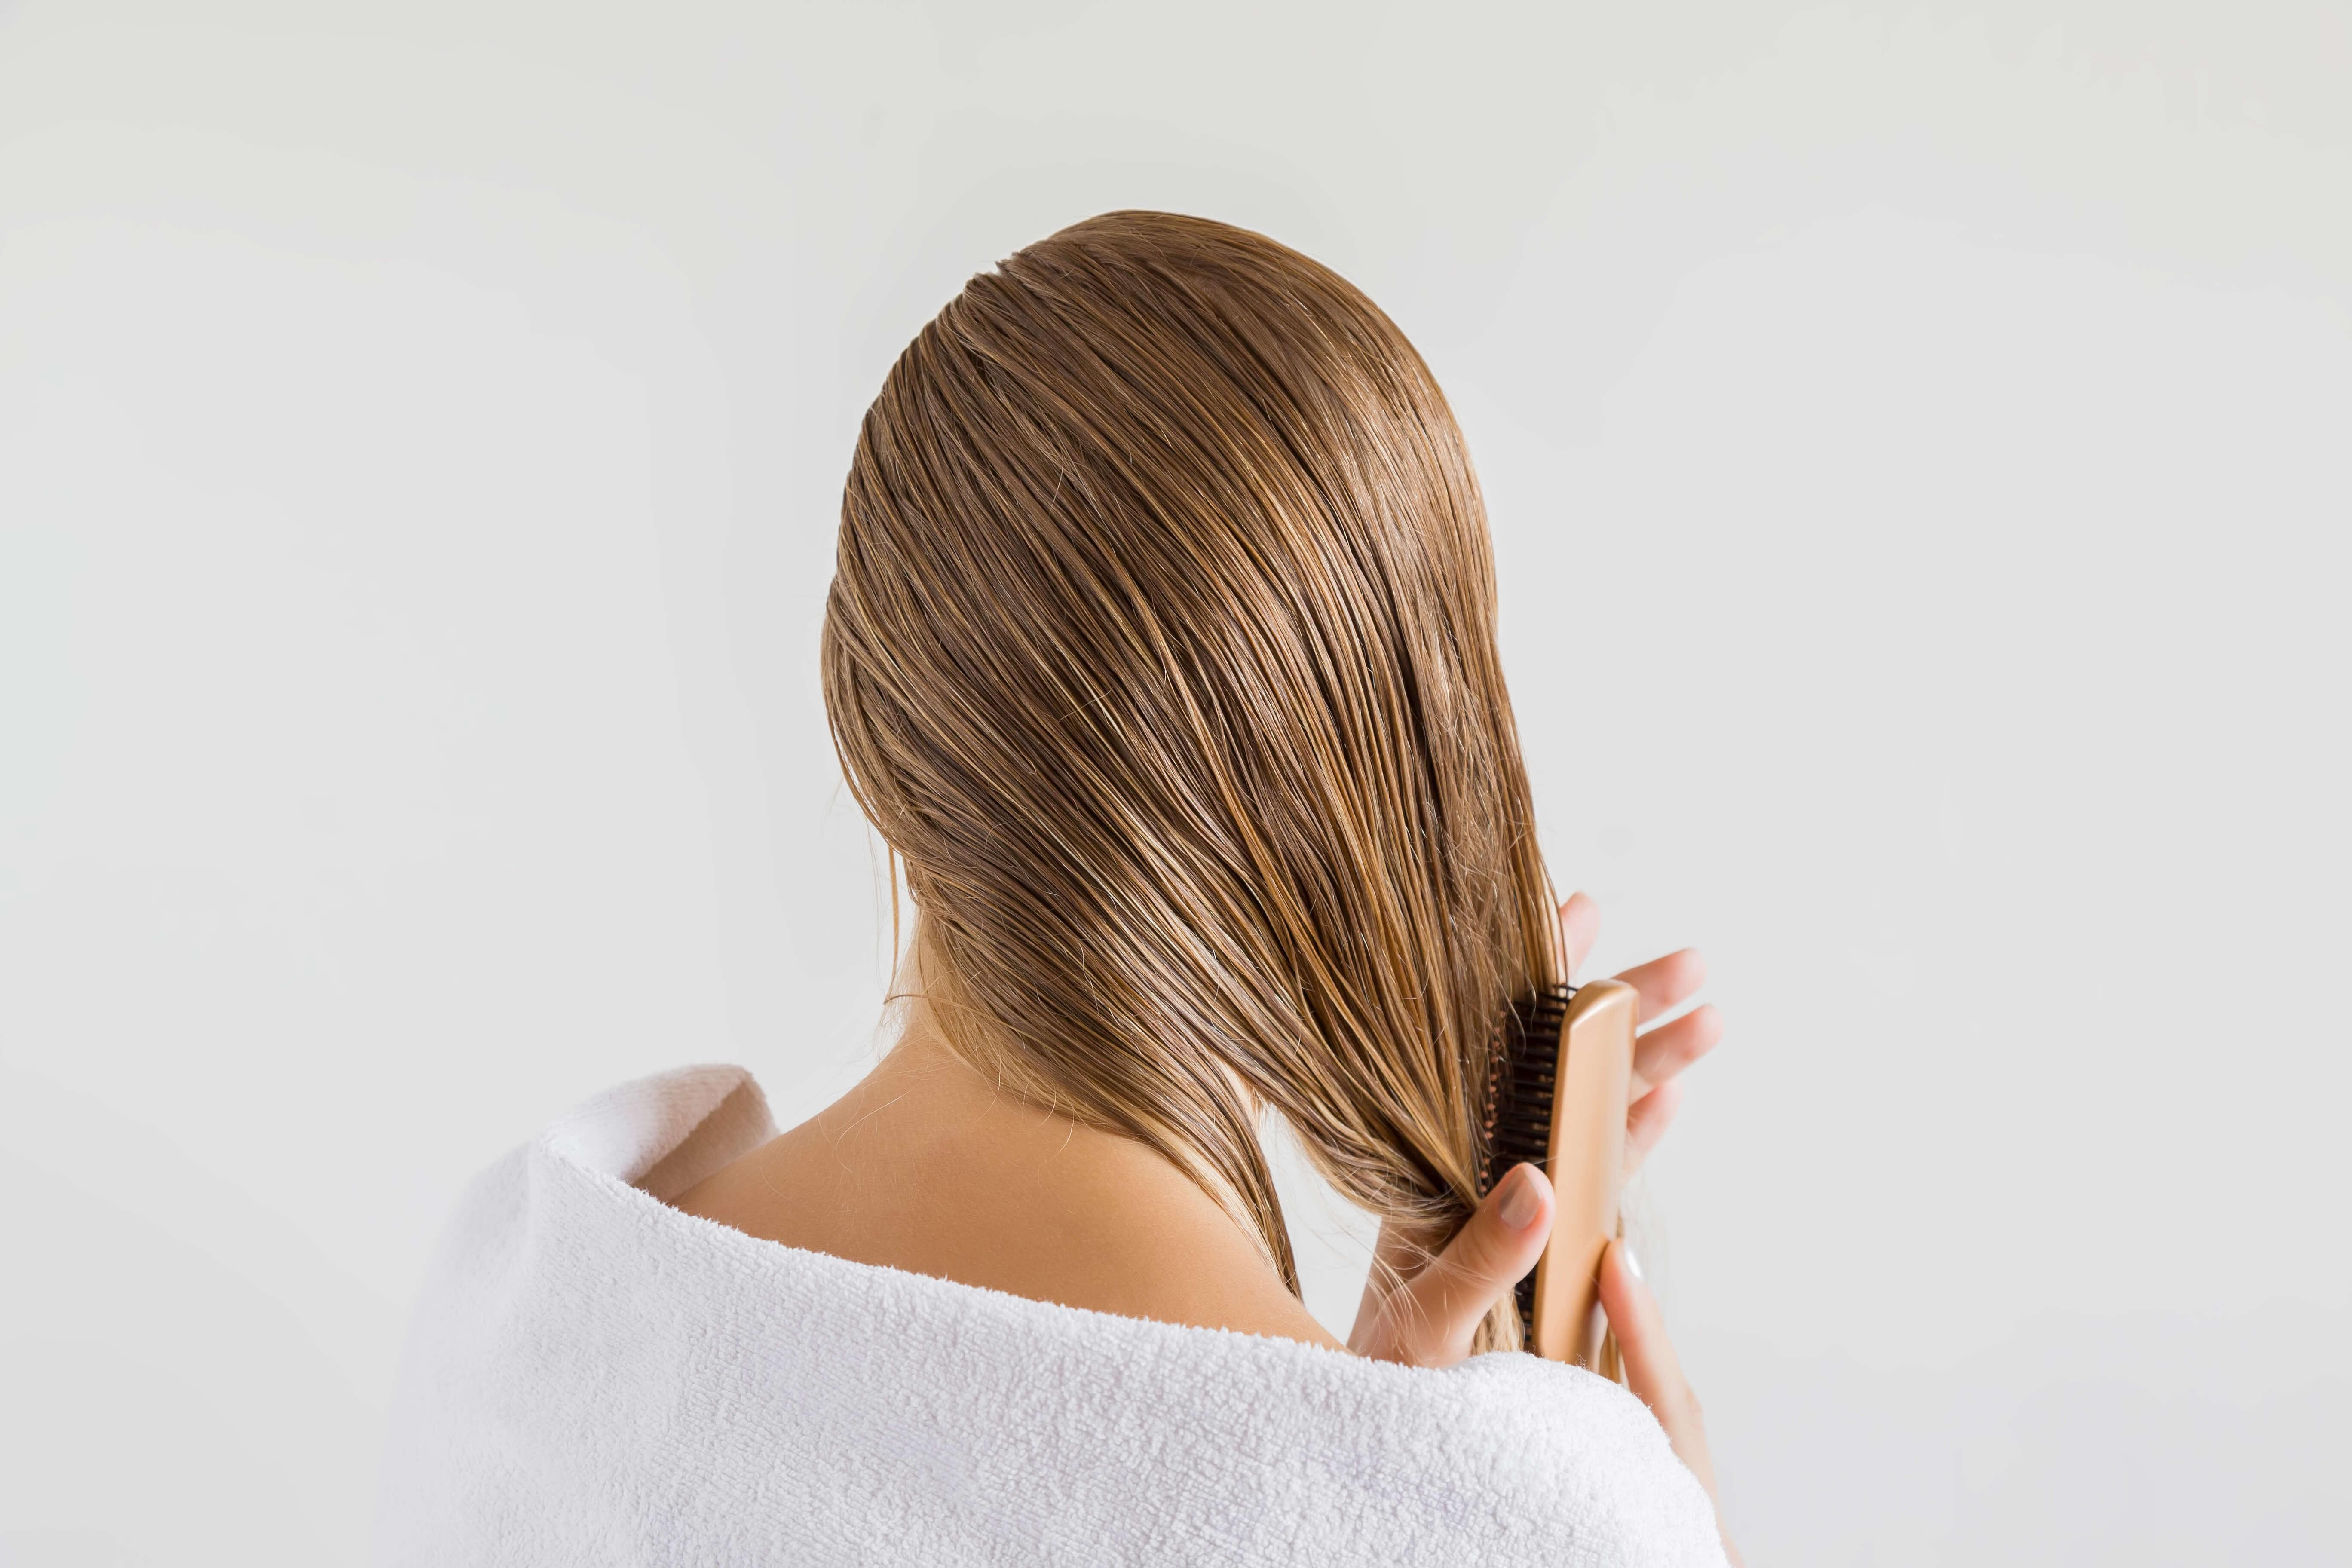 Concerned about hair loss? Don't fret, it might be completely normal